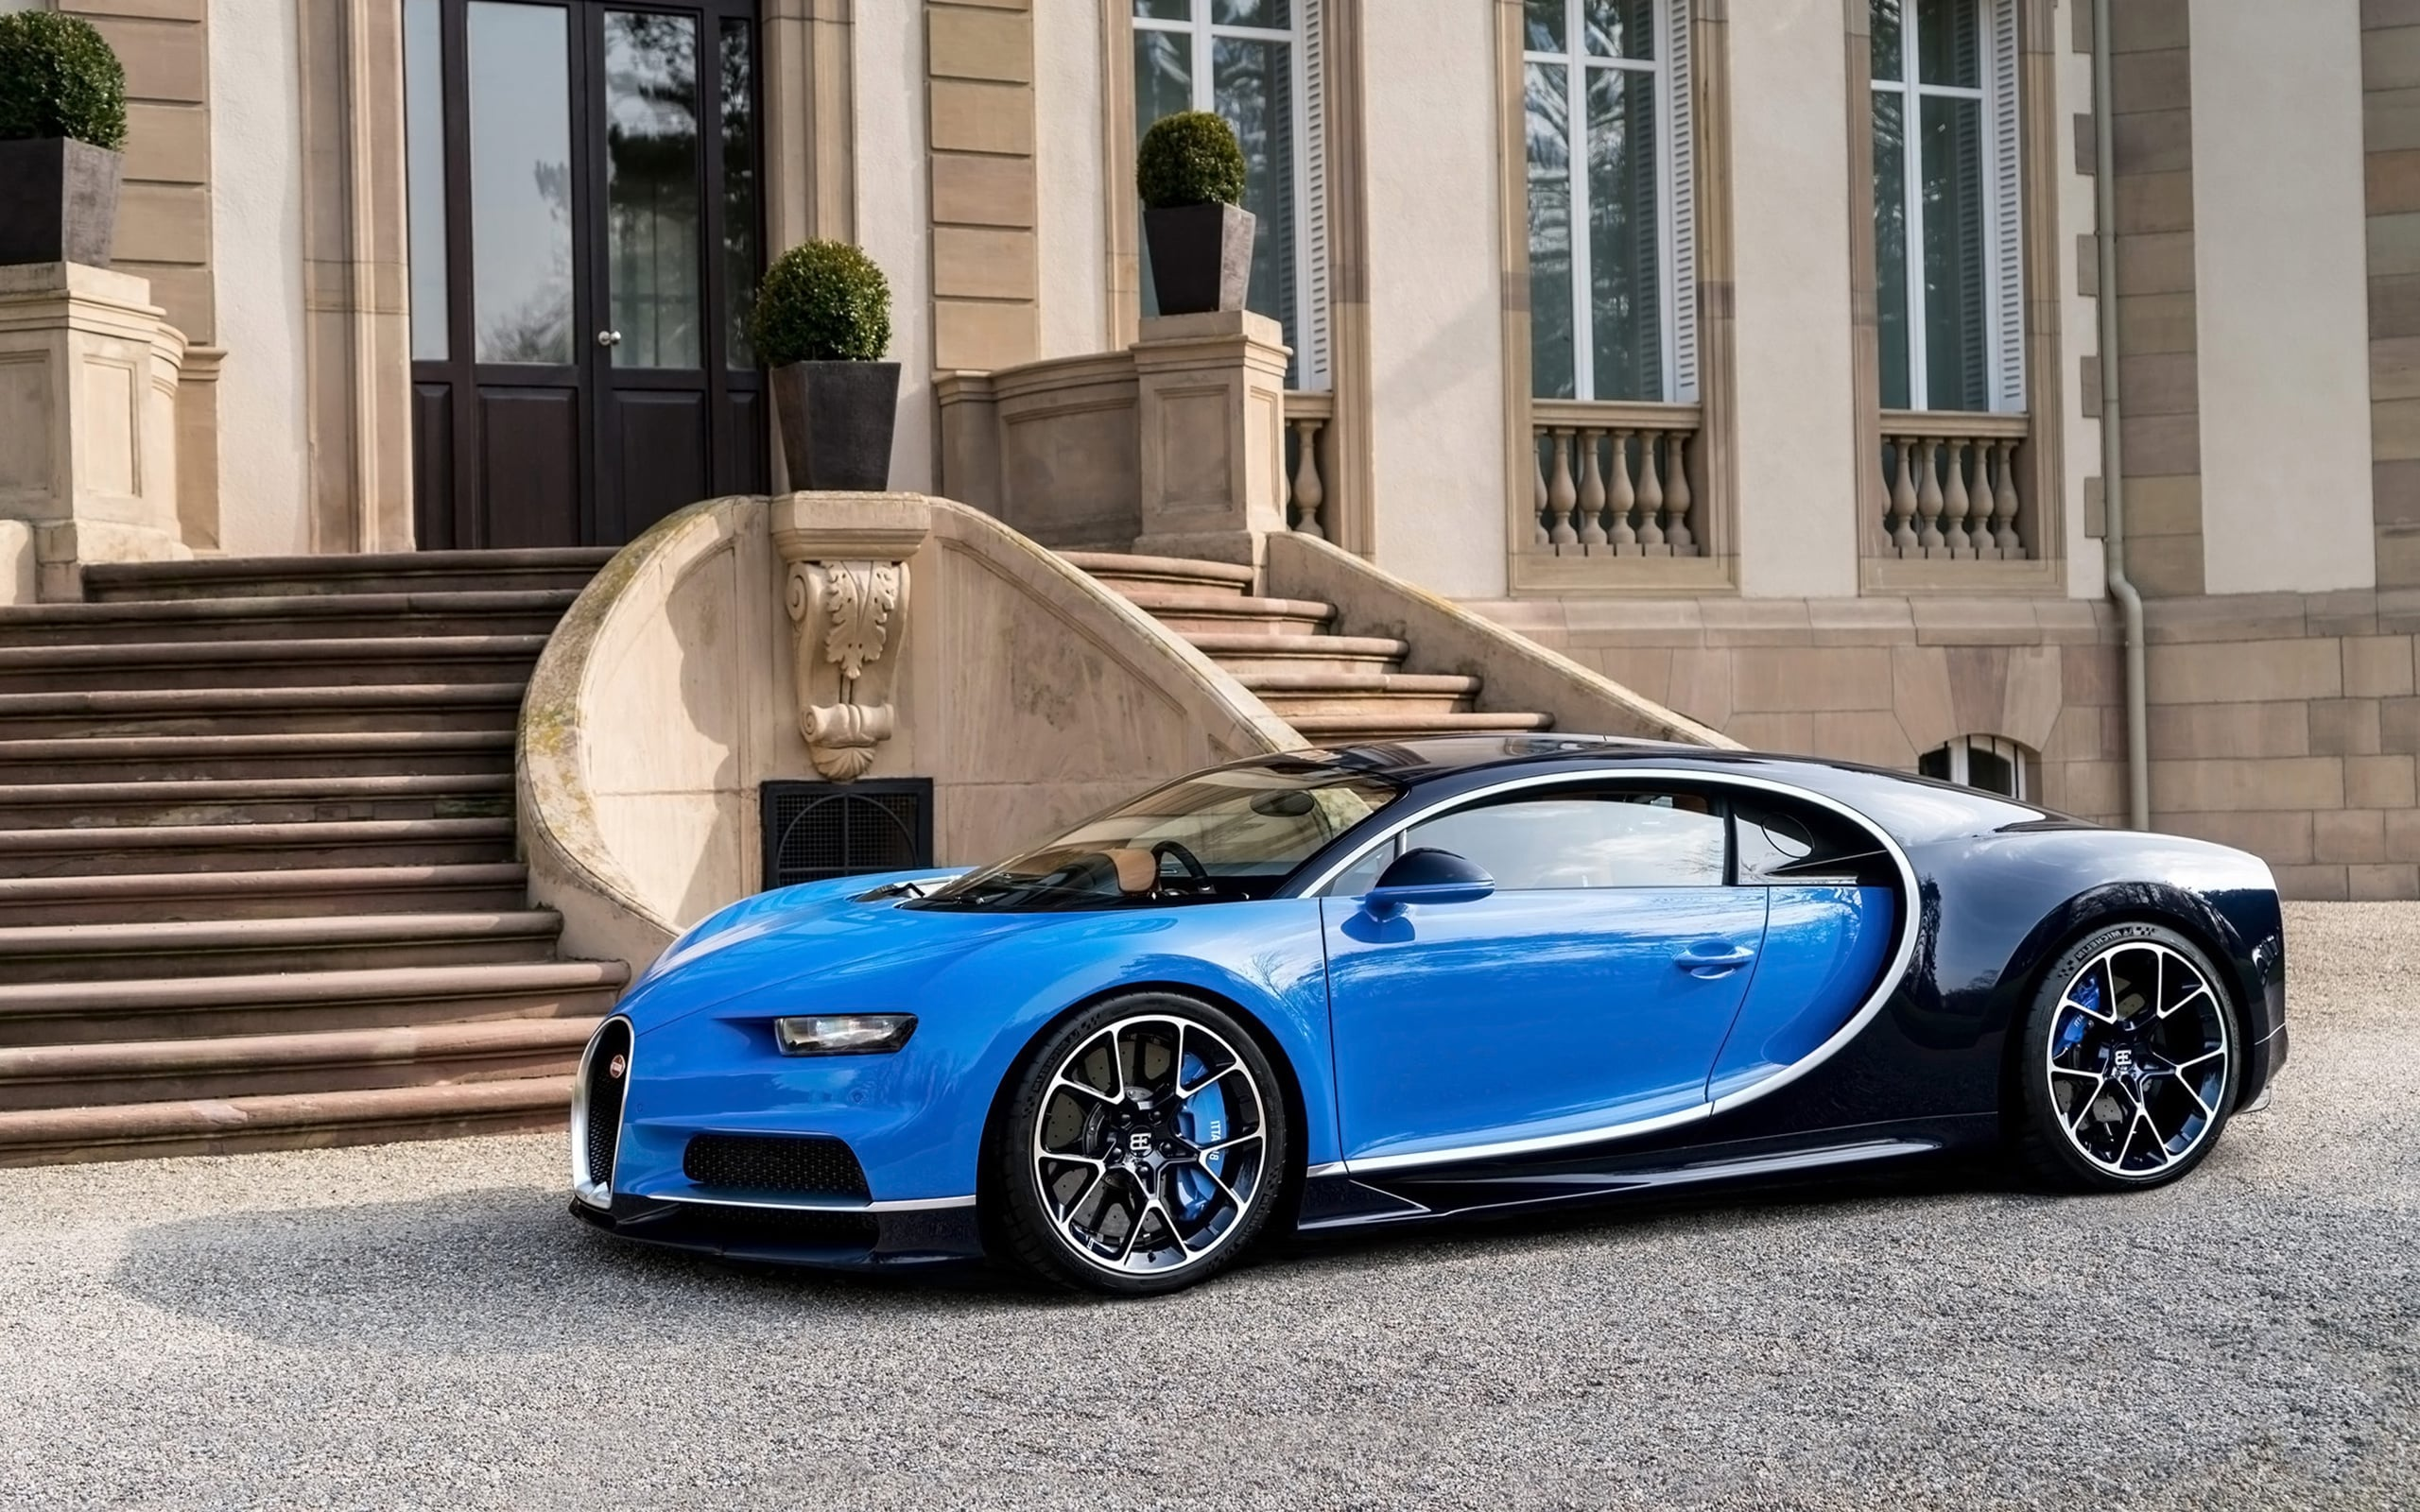 What You Should Know About The 2017 Bugatti Chiron - Exotic Car List